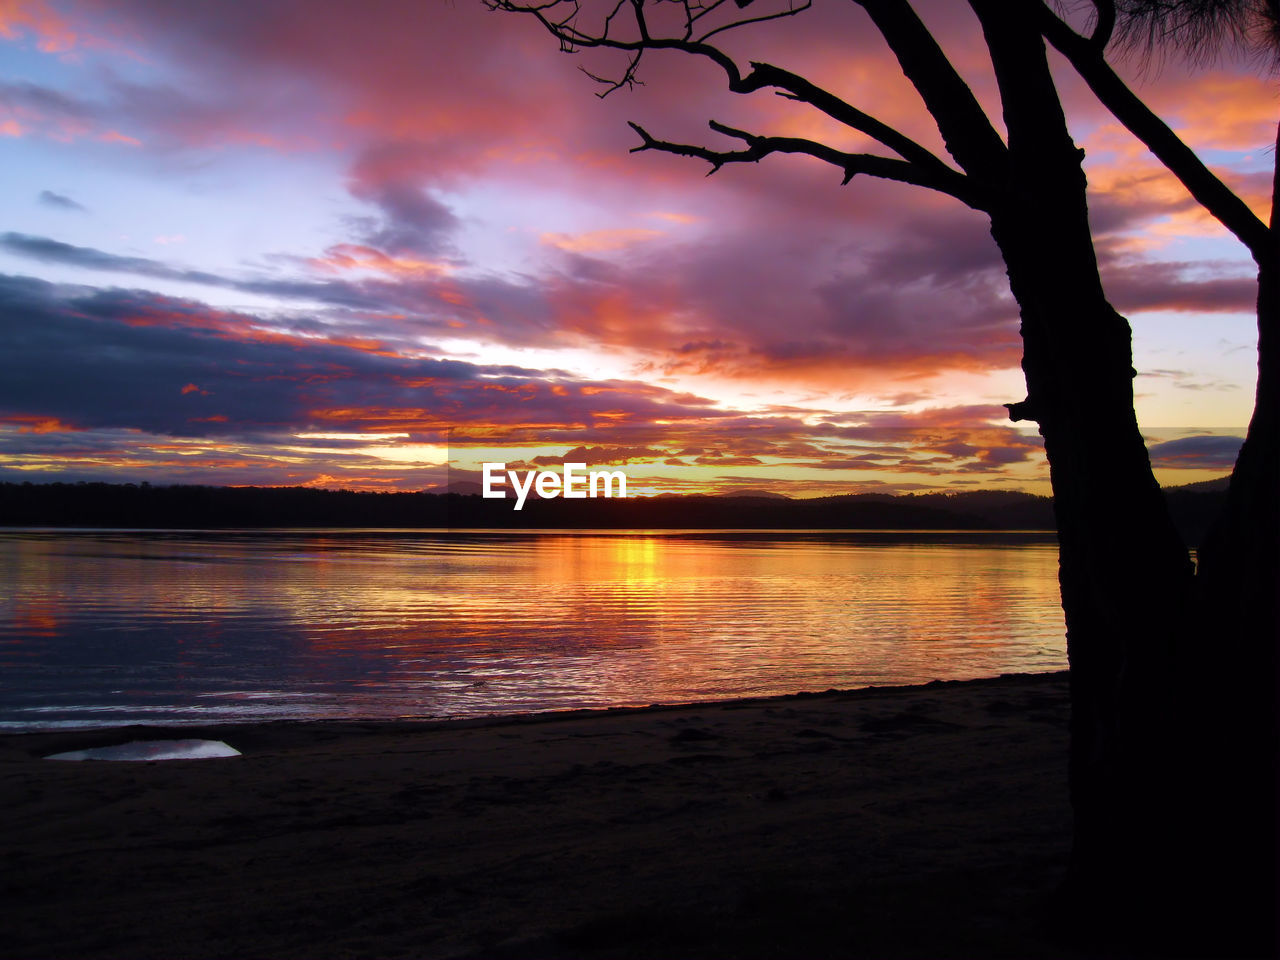 sunset, silhouette, beauty in nature, nature, scenics, orange color, sky, tranquil scene, tranquility, cloud - sky, dramatic sky, water, tree, no people, sea, outdoors